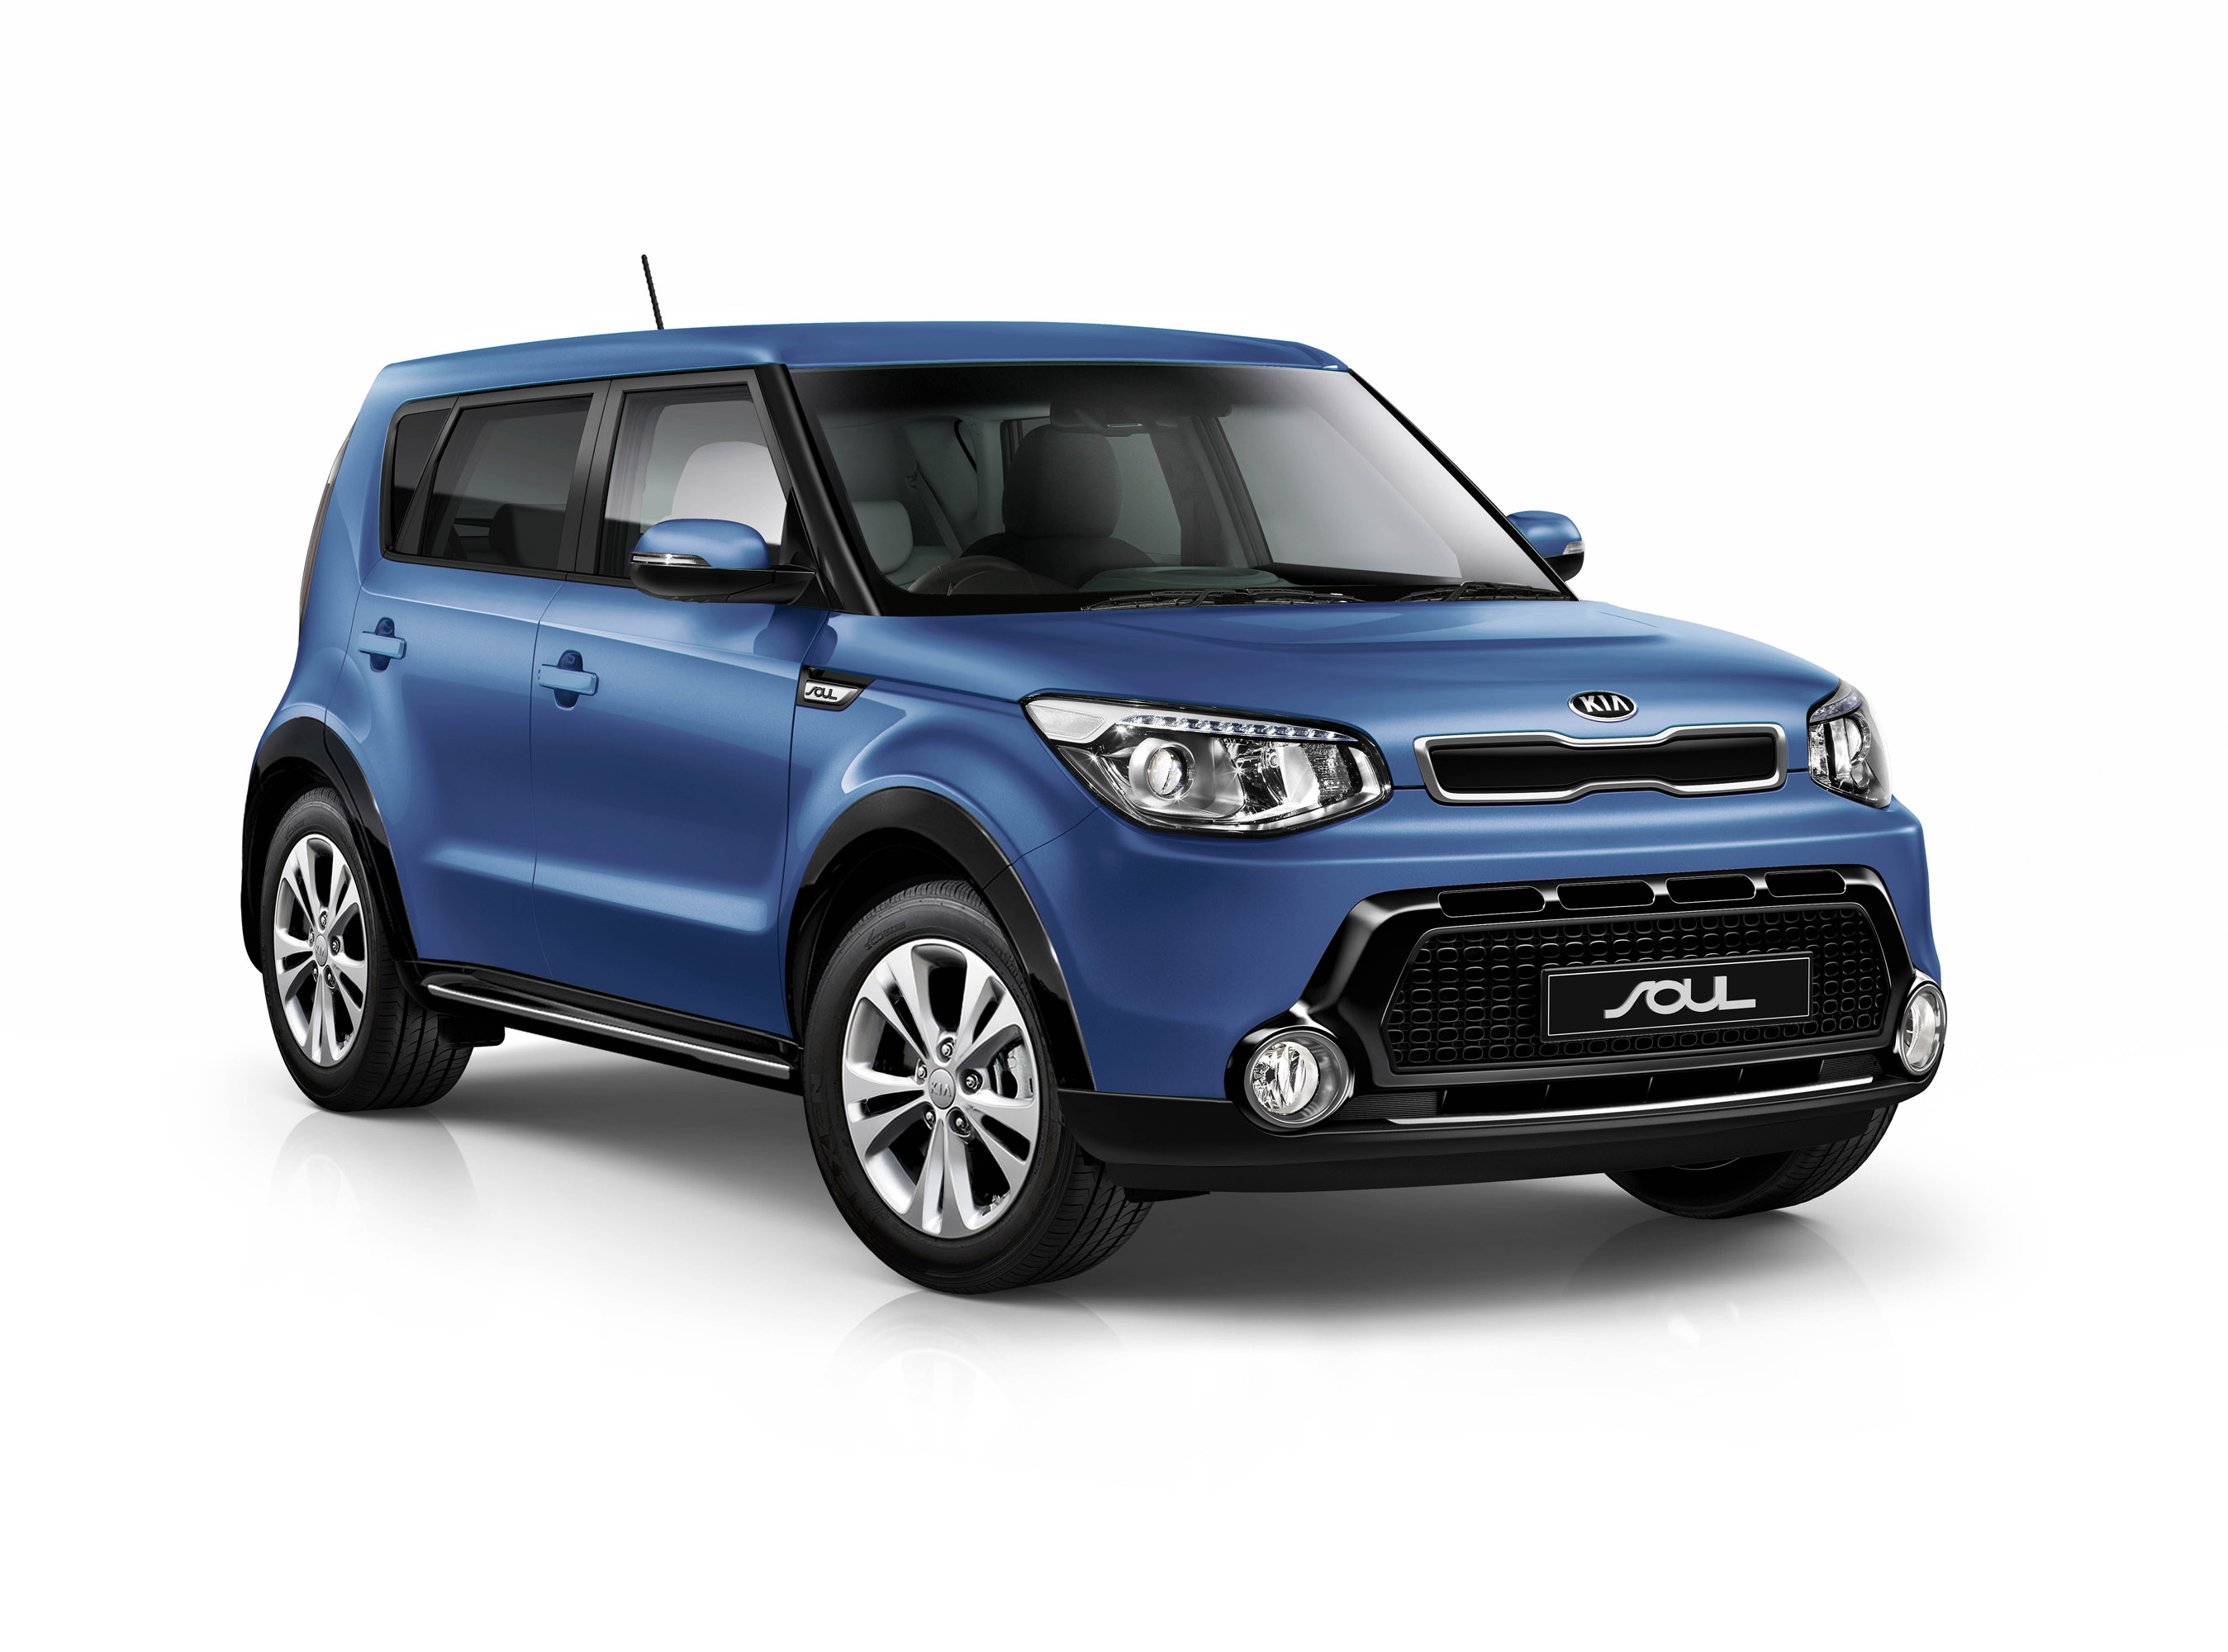 kia reveals soul urban. Black Bedroom Furniture Sets. Home Design Ideas